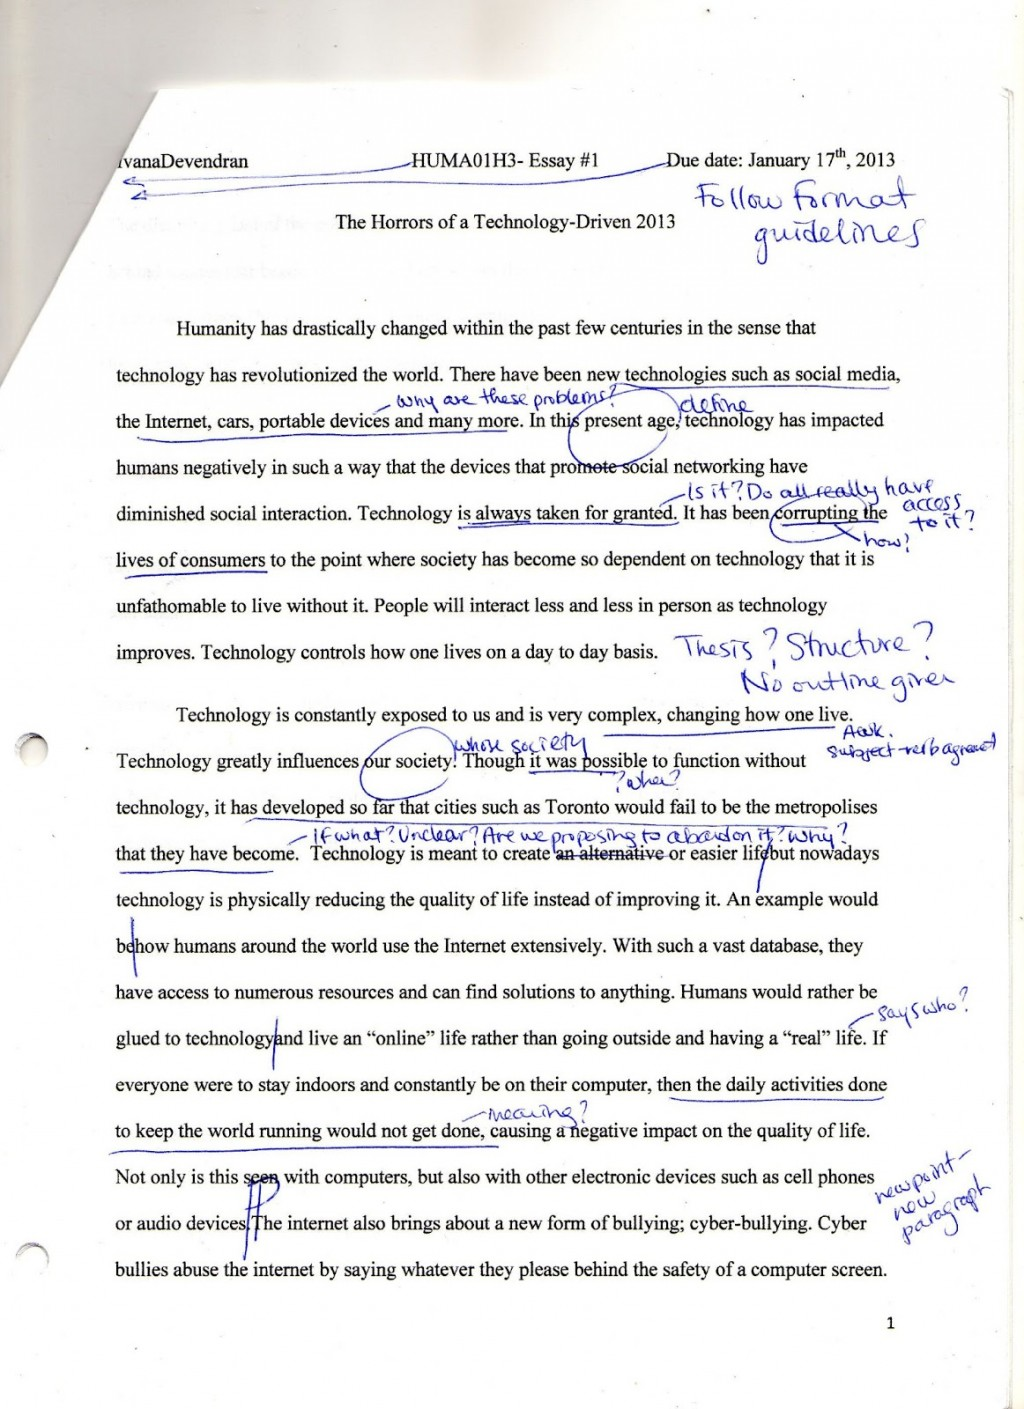 007 Essay Example Essays For Free Humanities Topics I Cause Effect Samples Examples Of Rare And Writing Prompts Large